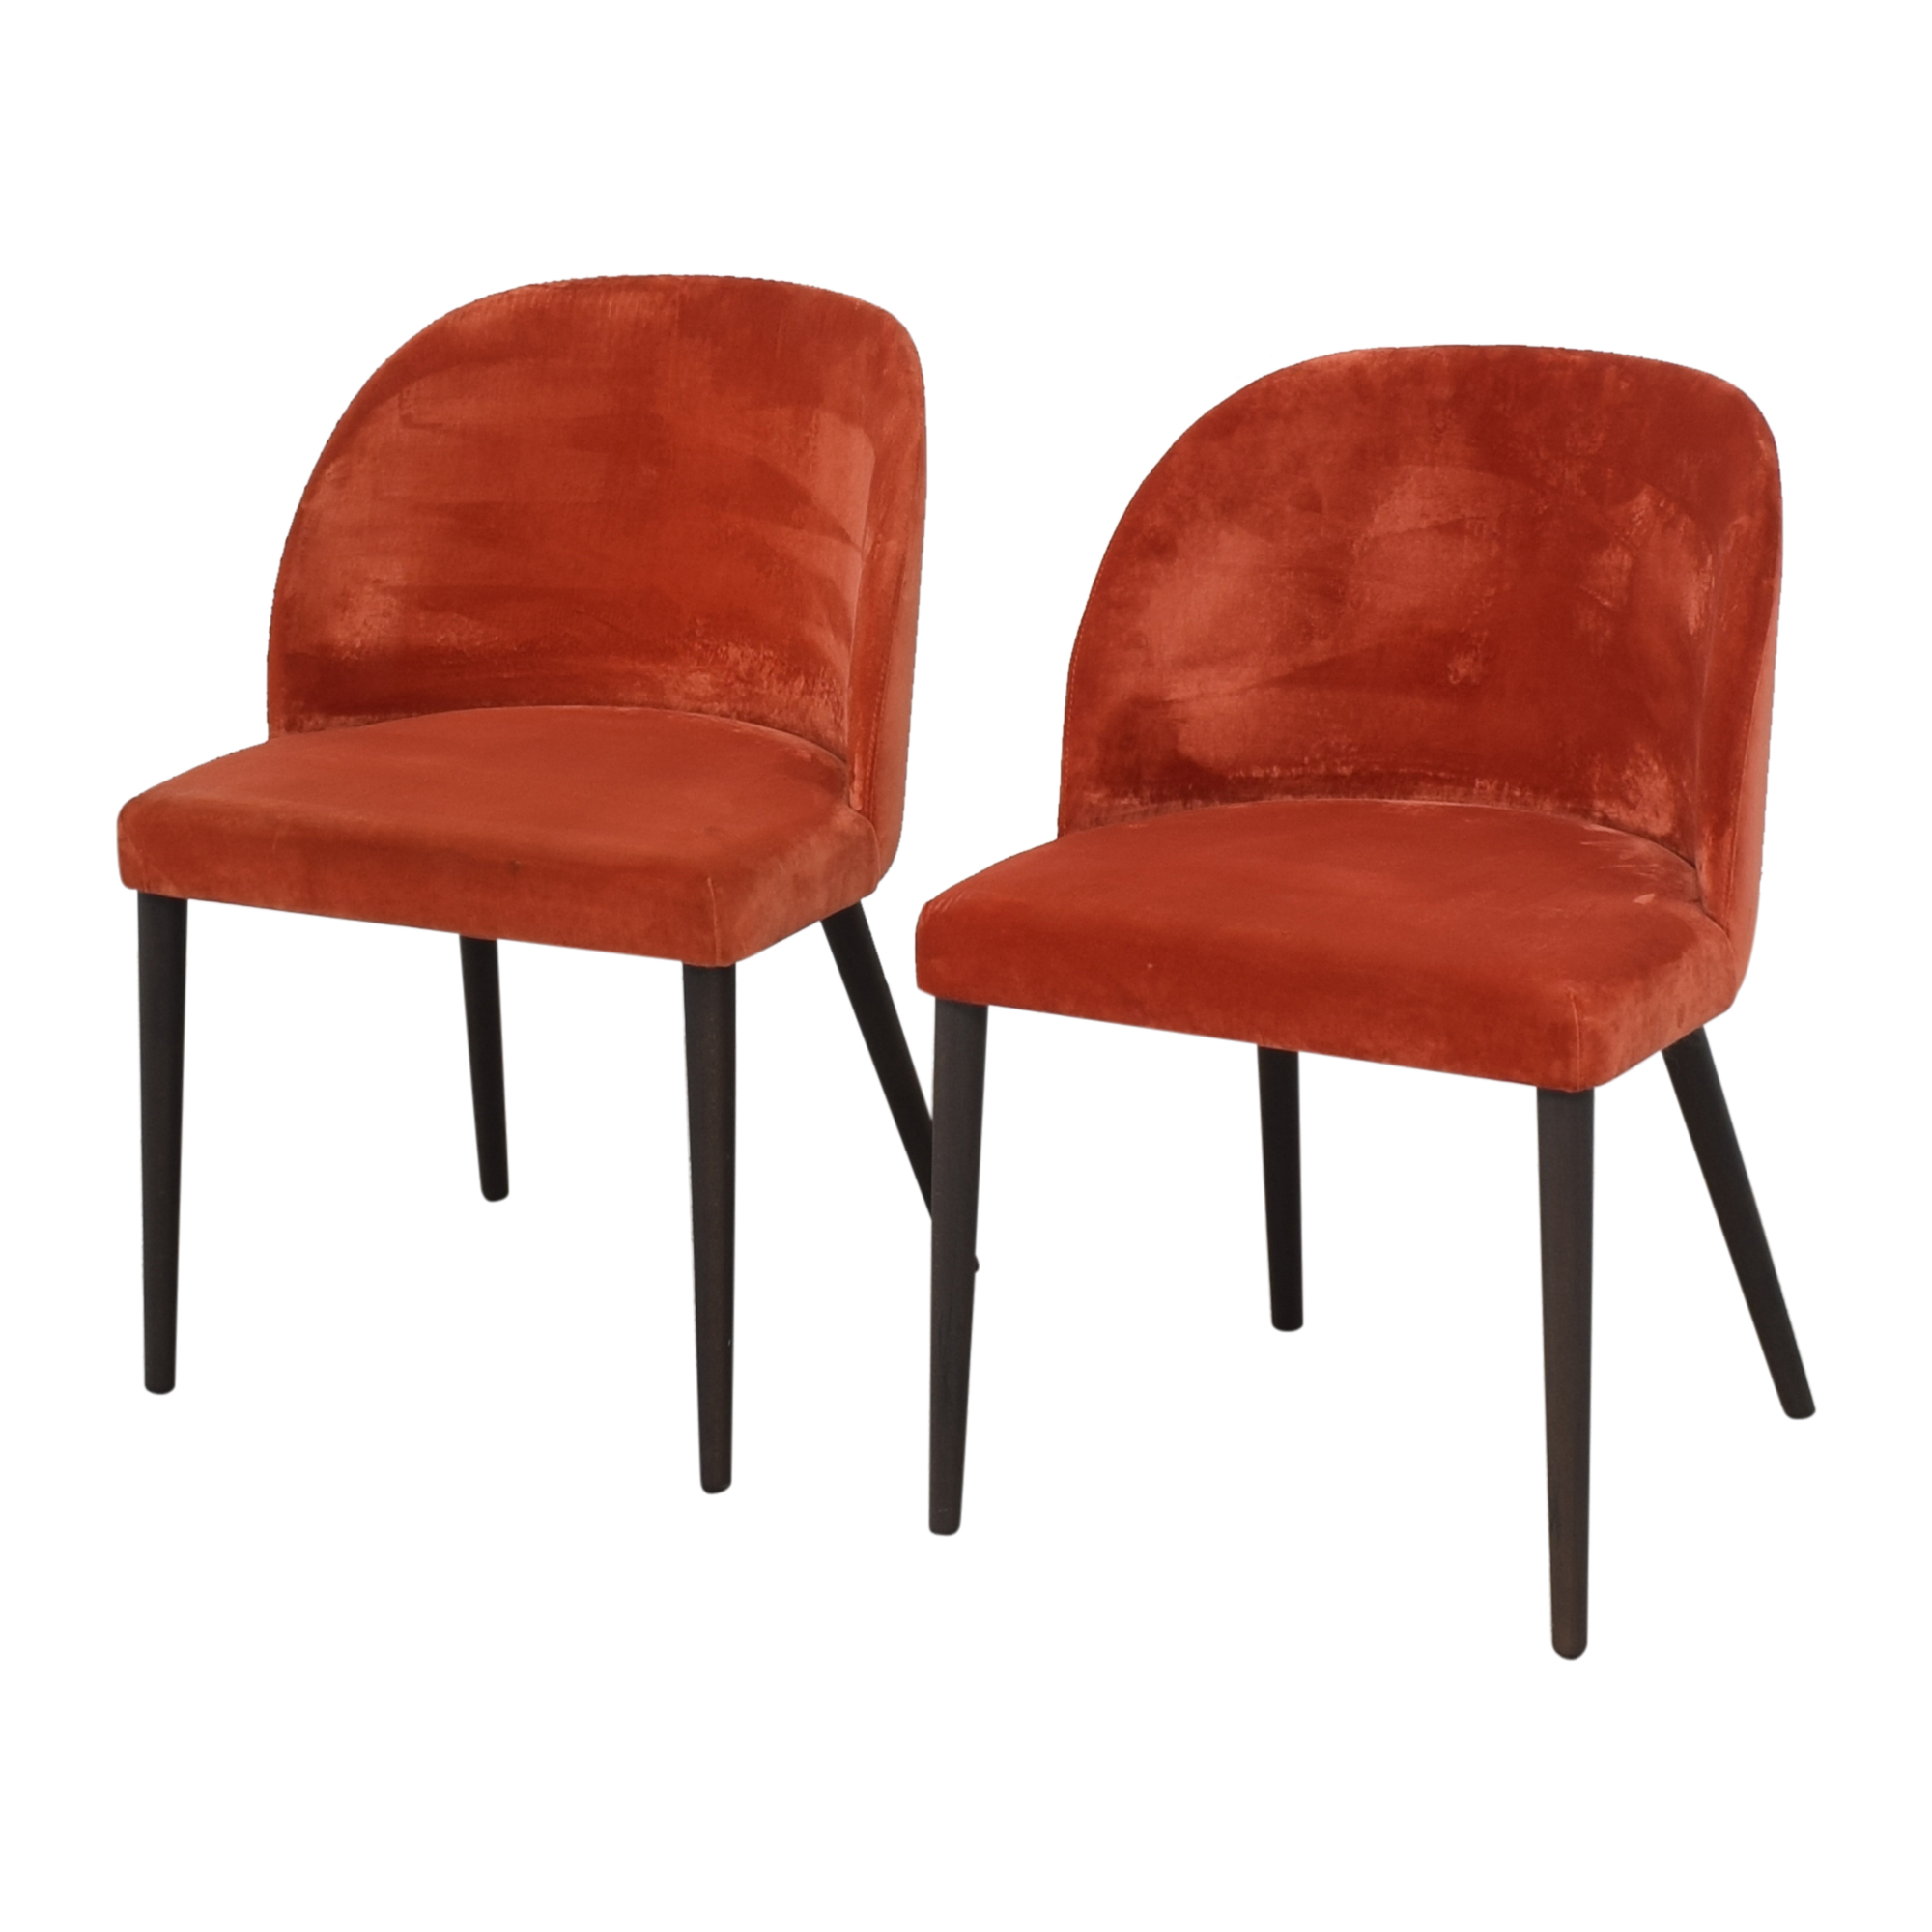 Crate & Barrel Crate & Barrel Camille Dining Chairs ma